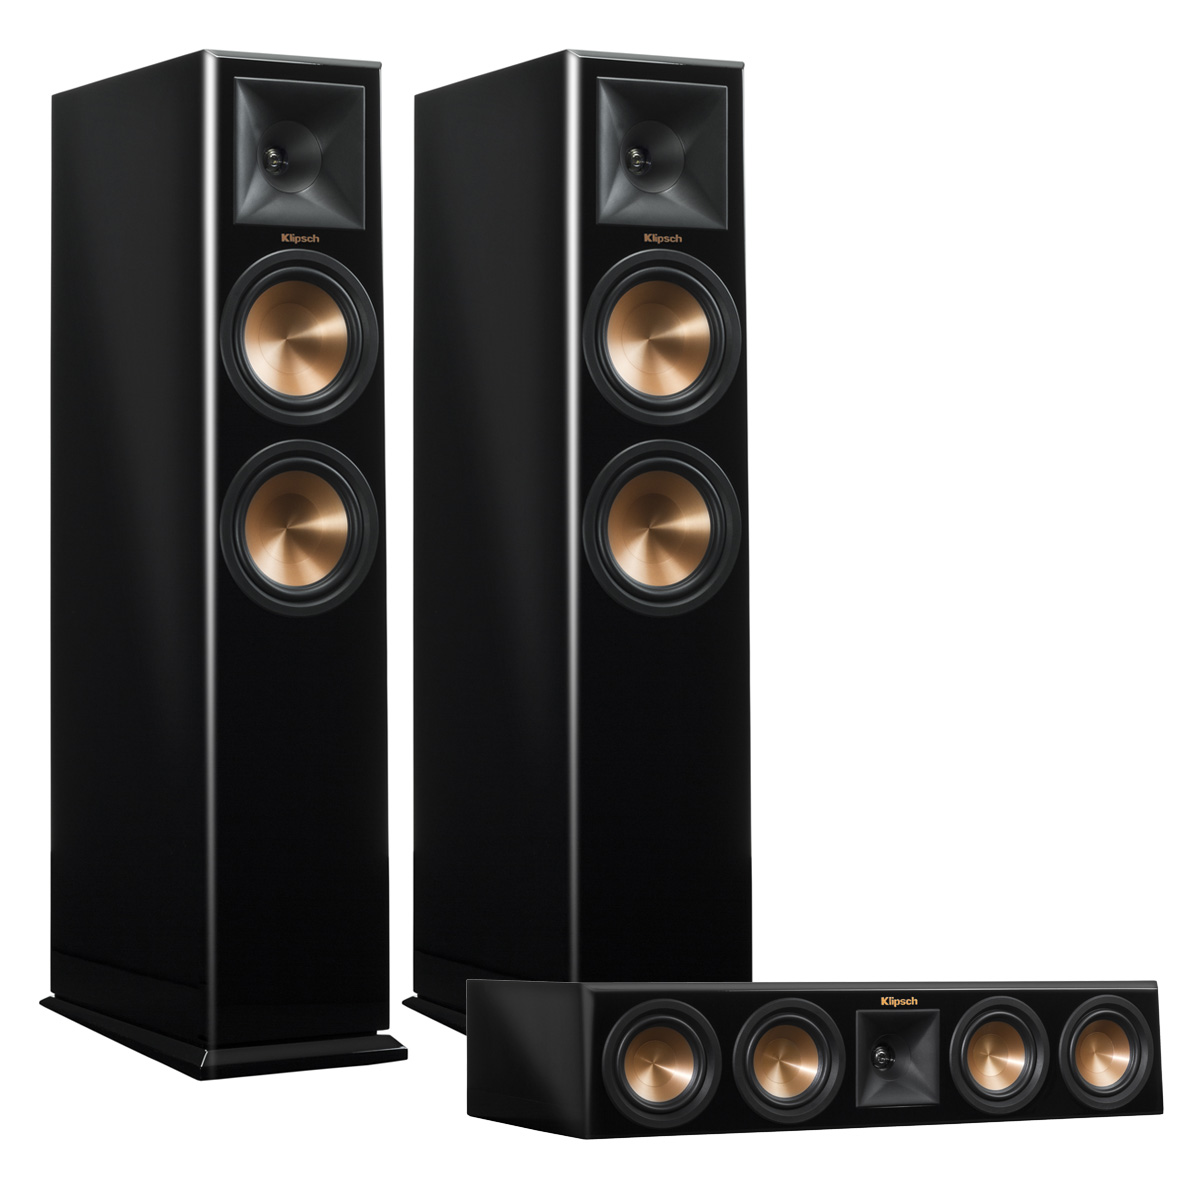 Klipsch RP-260F Reference Premiere Floorstanding Speaker Pair with RP-440C Center Channel Speaker (Piano Black) by Klipsch